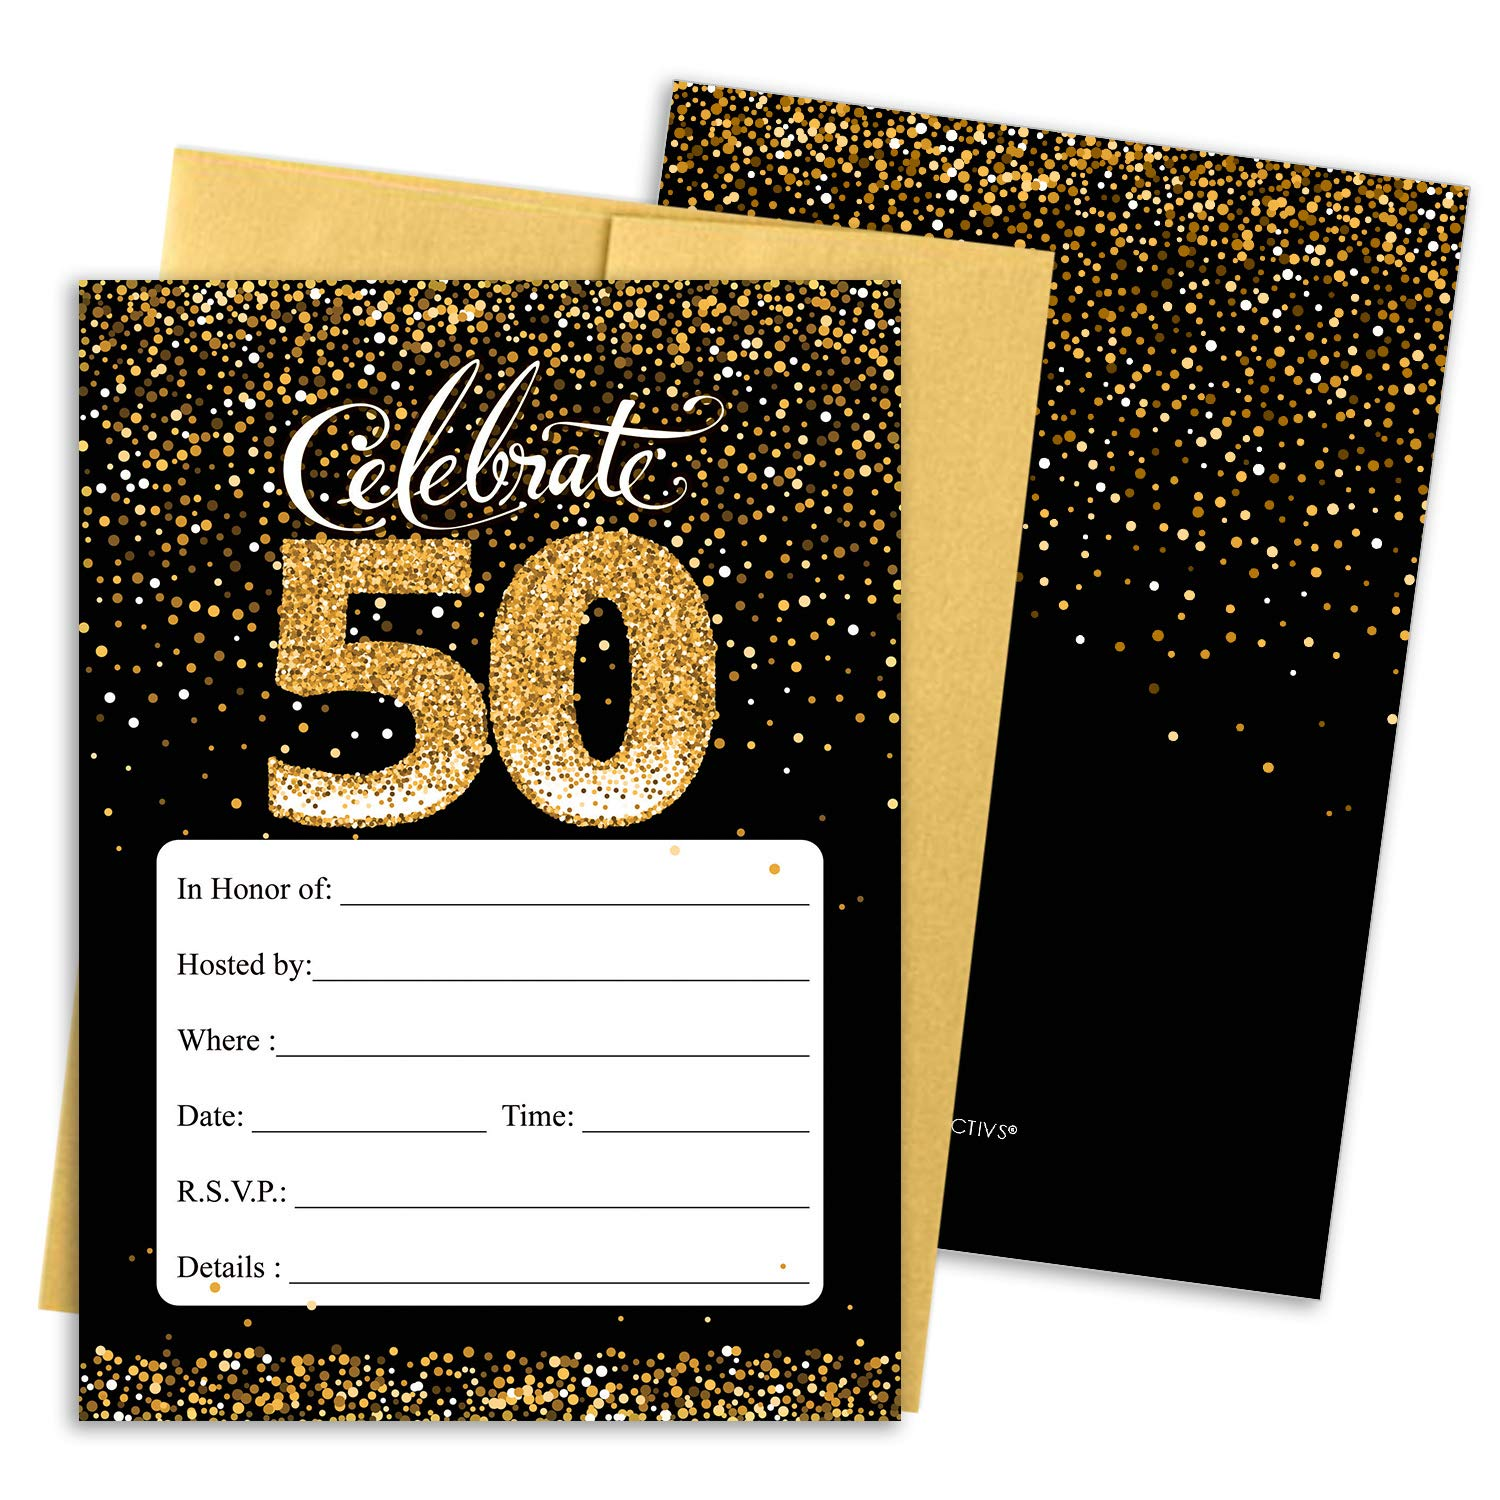 50th Birthday Party Invitation Cards With Envelopes 25 Count Black And Gold